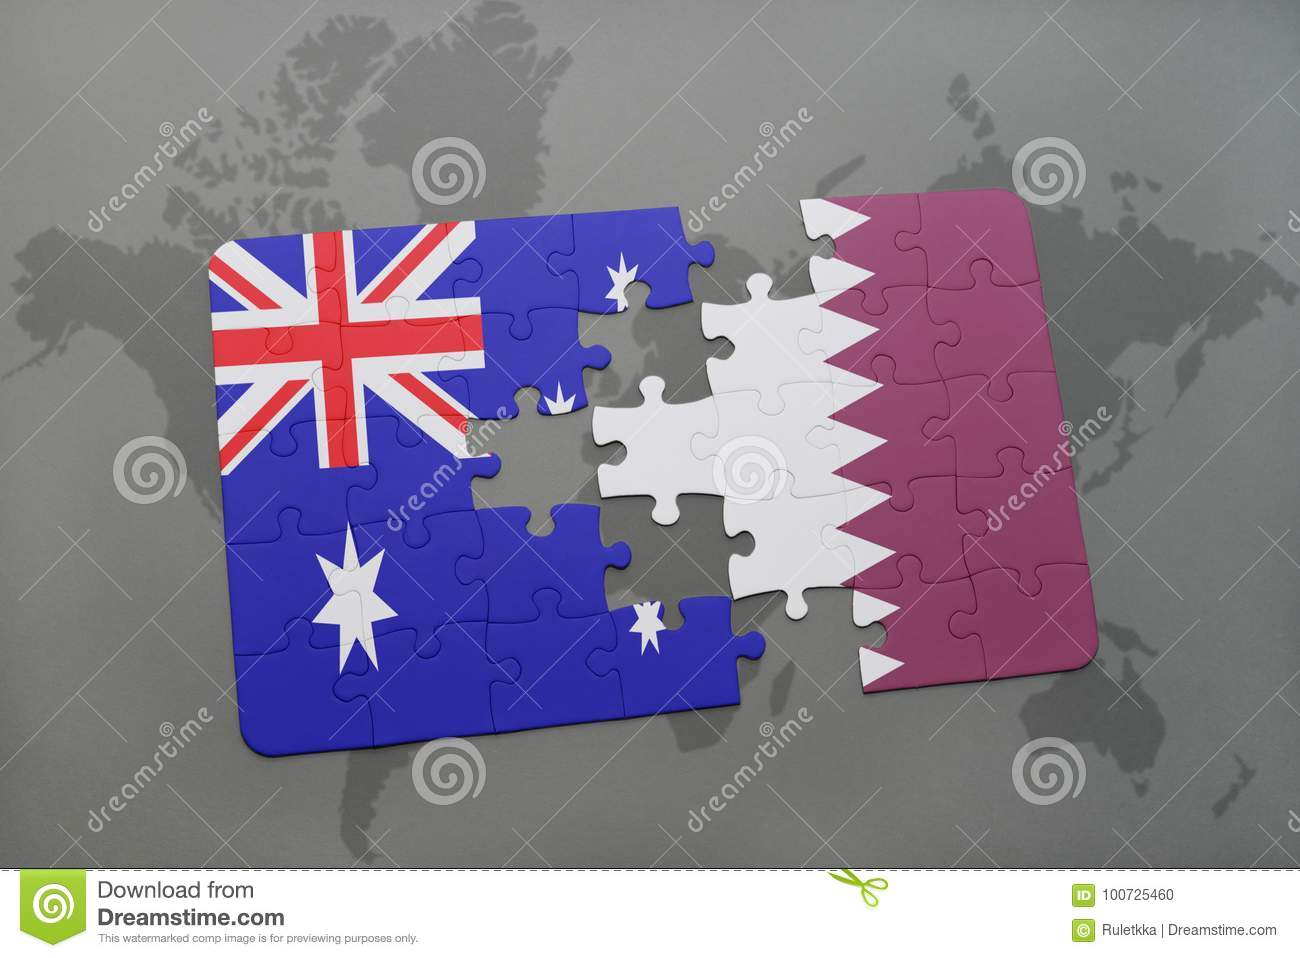 Puzzle With The National Flag Of Australia And Qatar On A World Map on